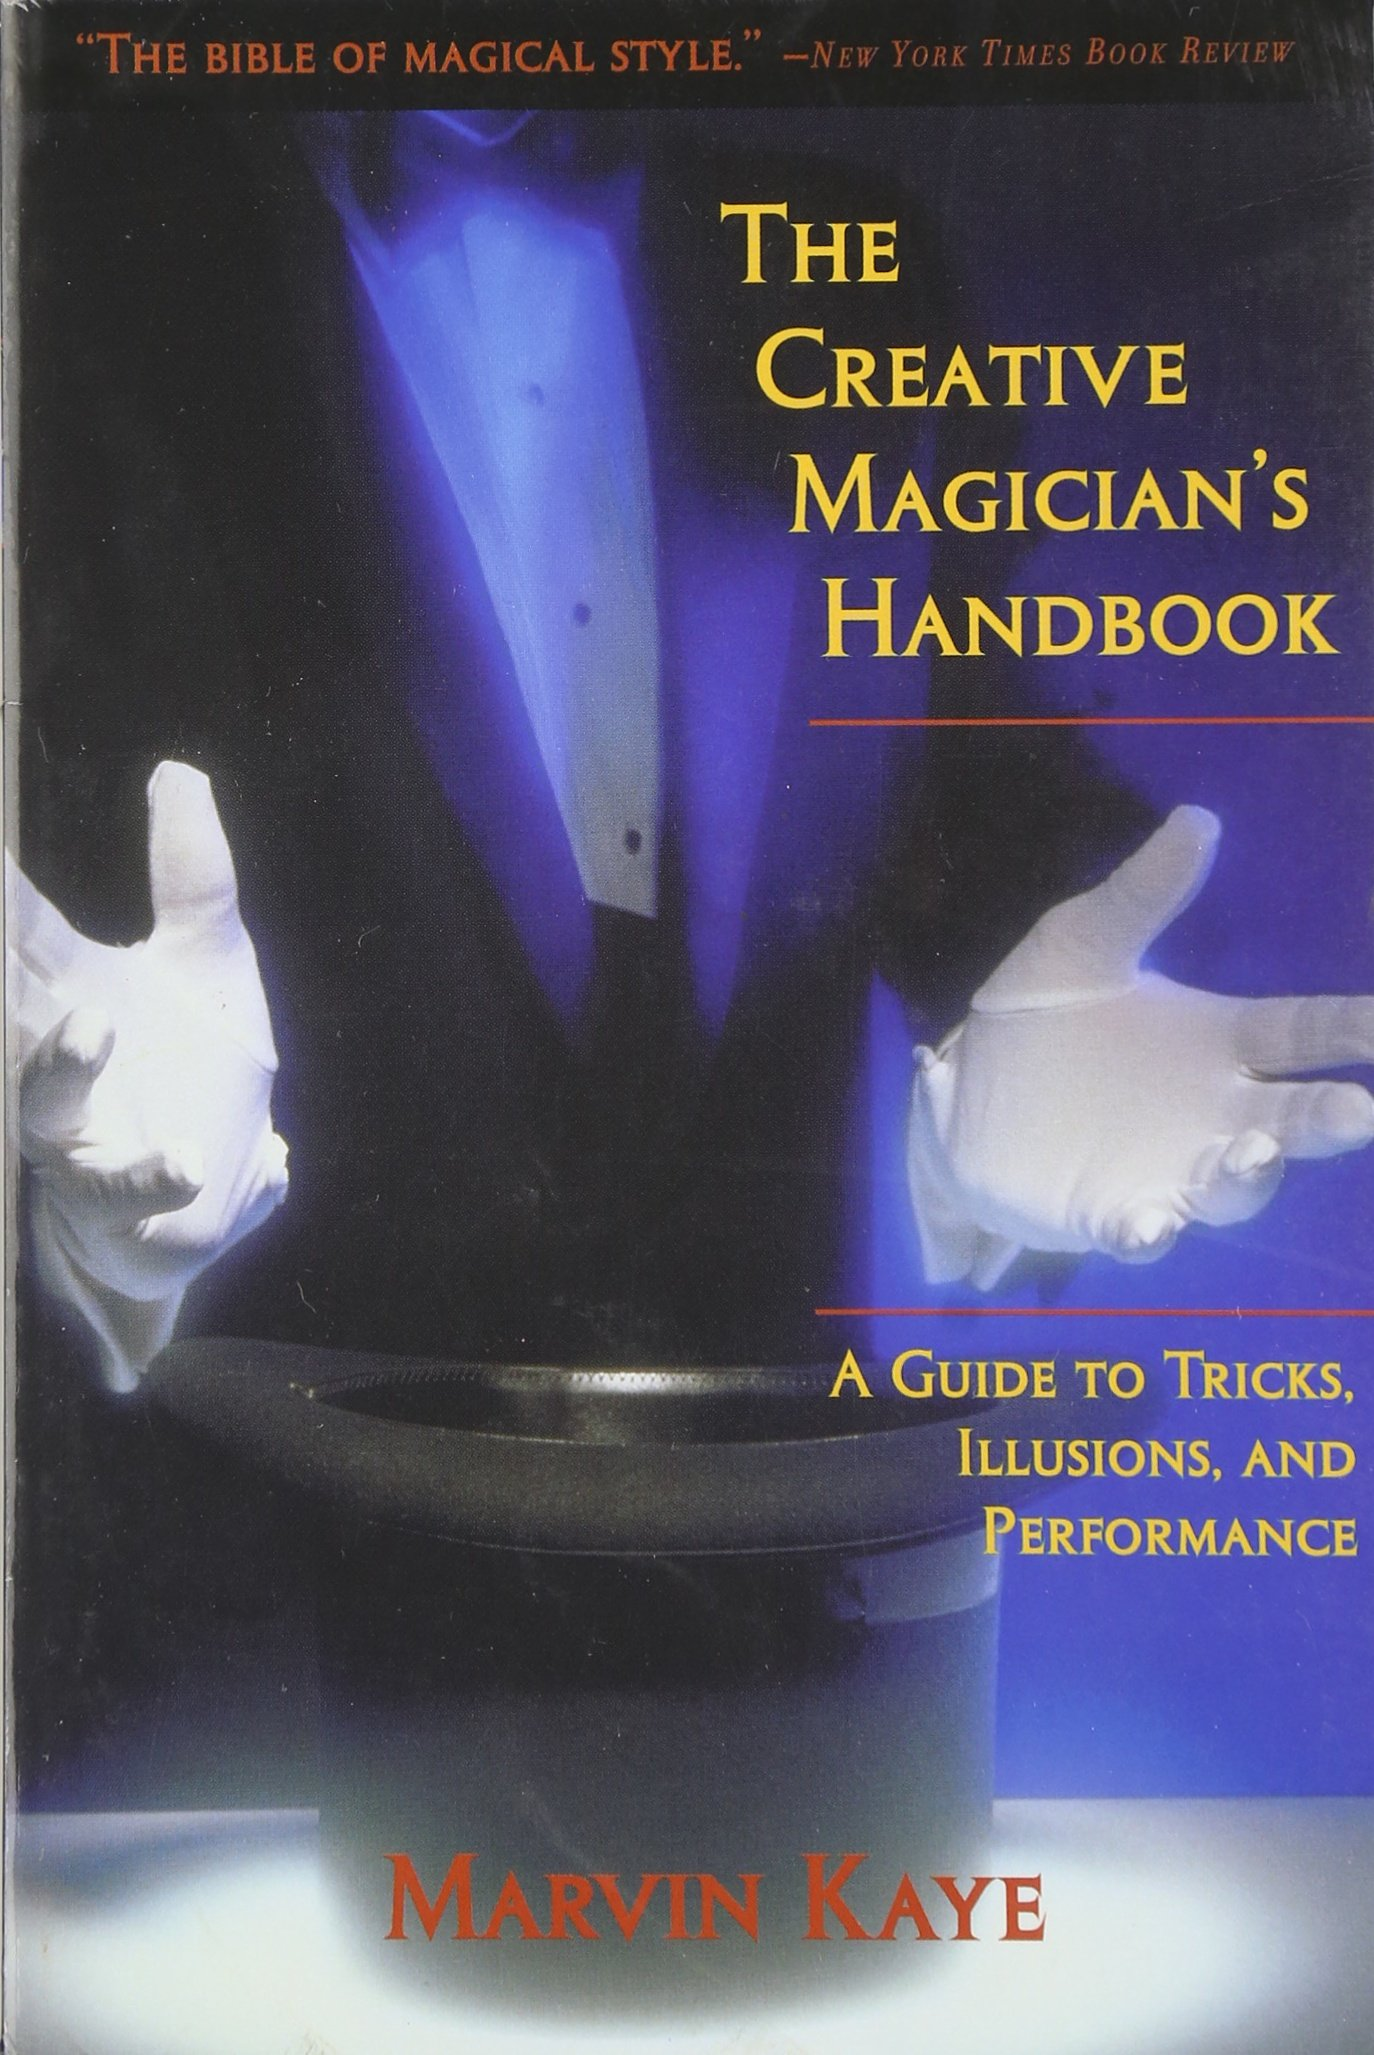 The Creative Magician's Handbook: A Guide to Tricks, Illusions, and Performance